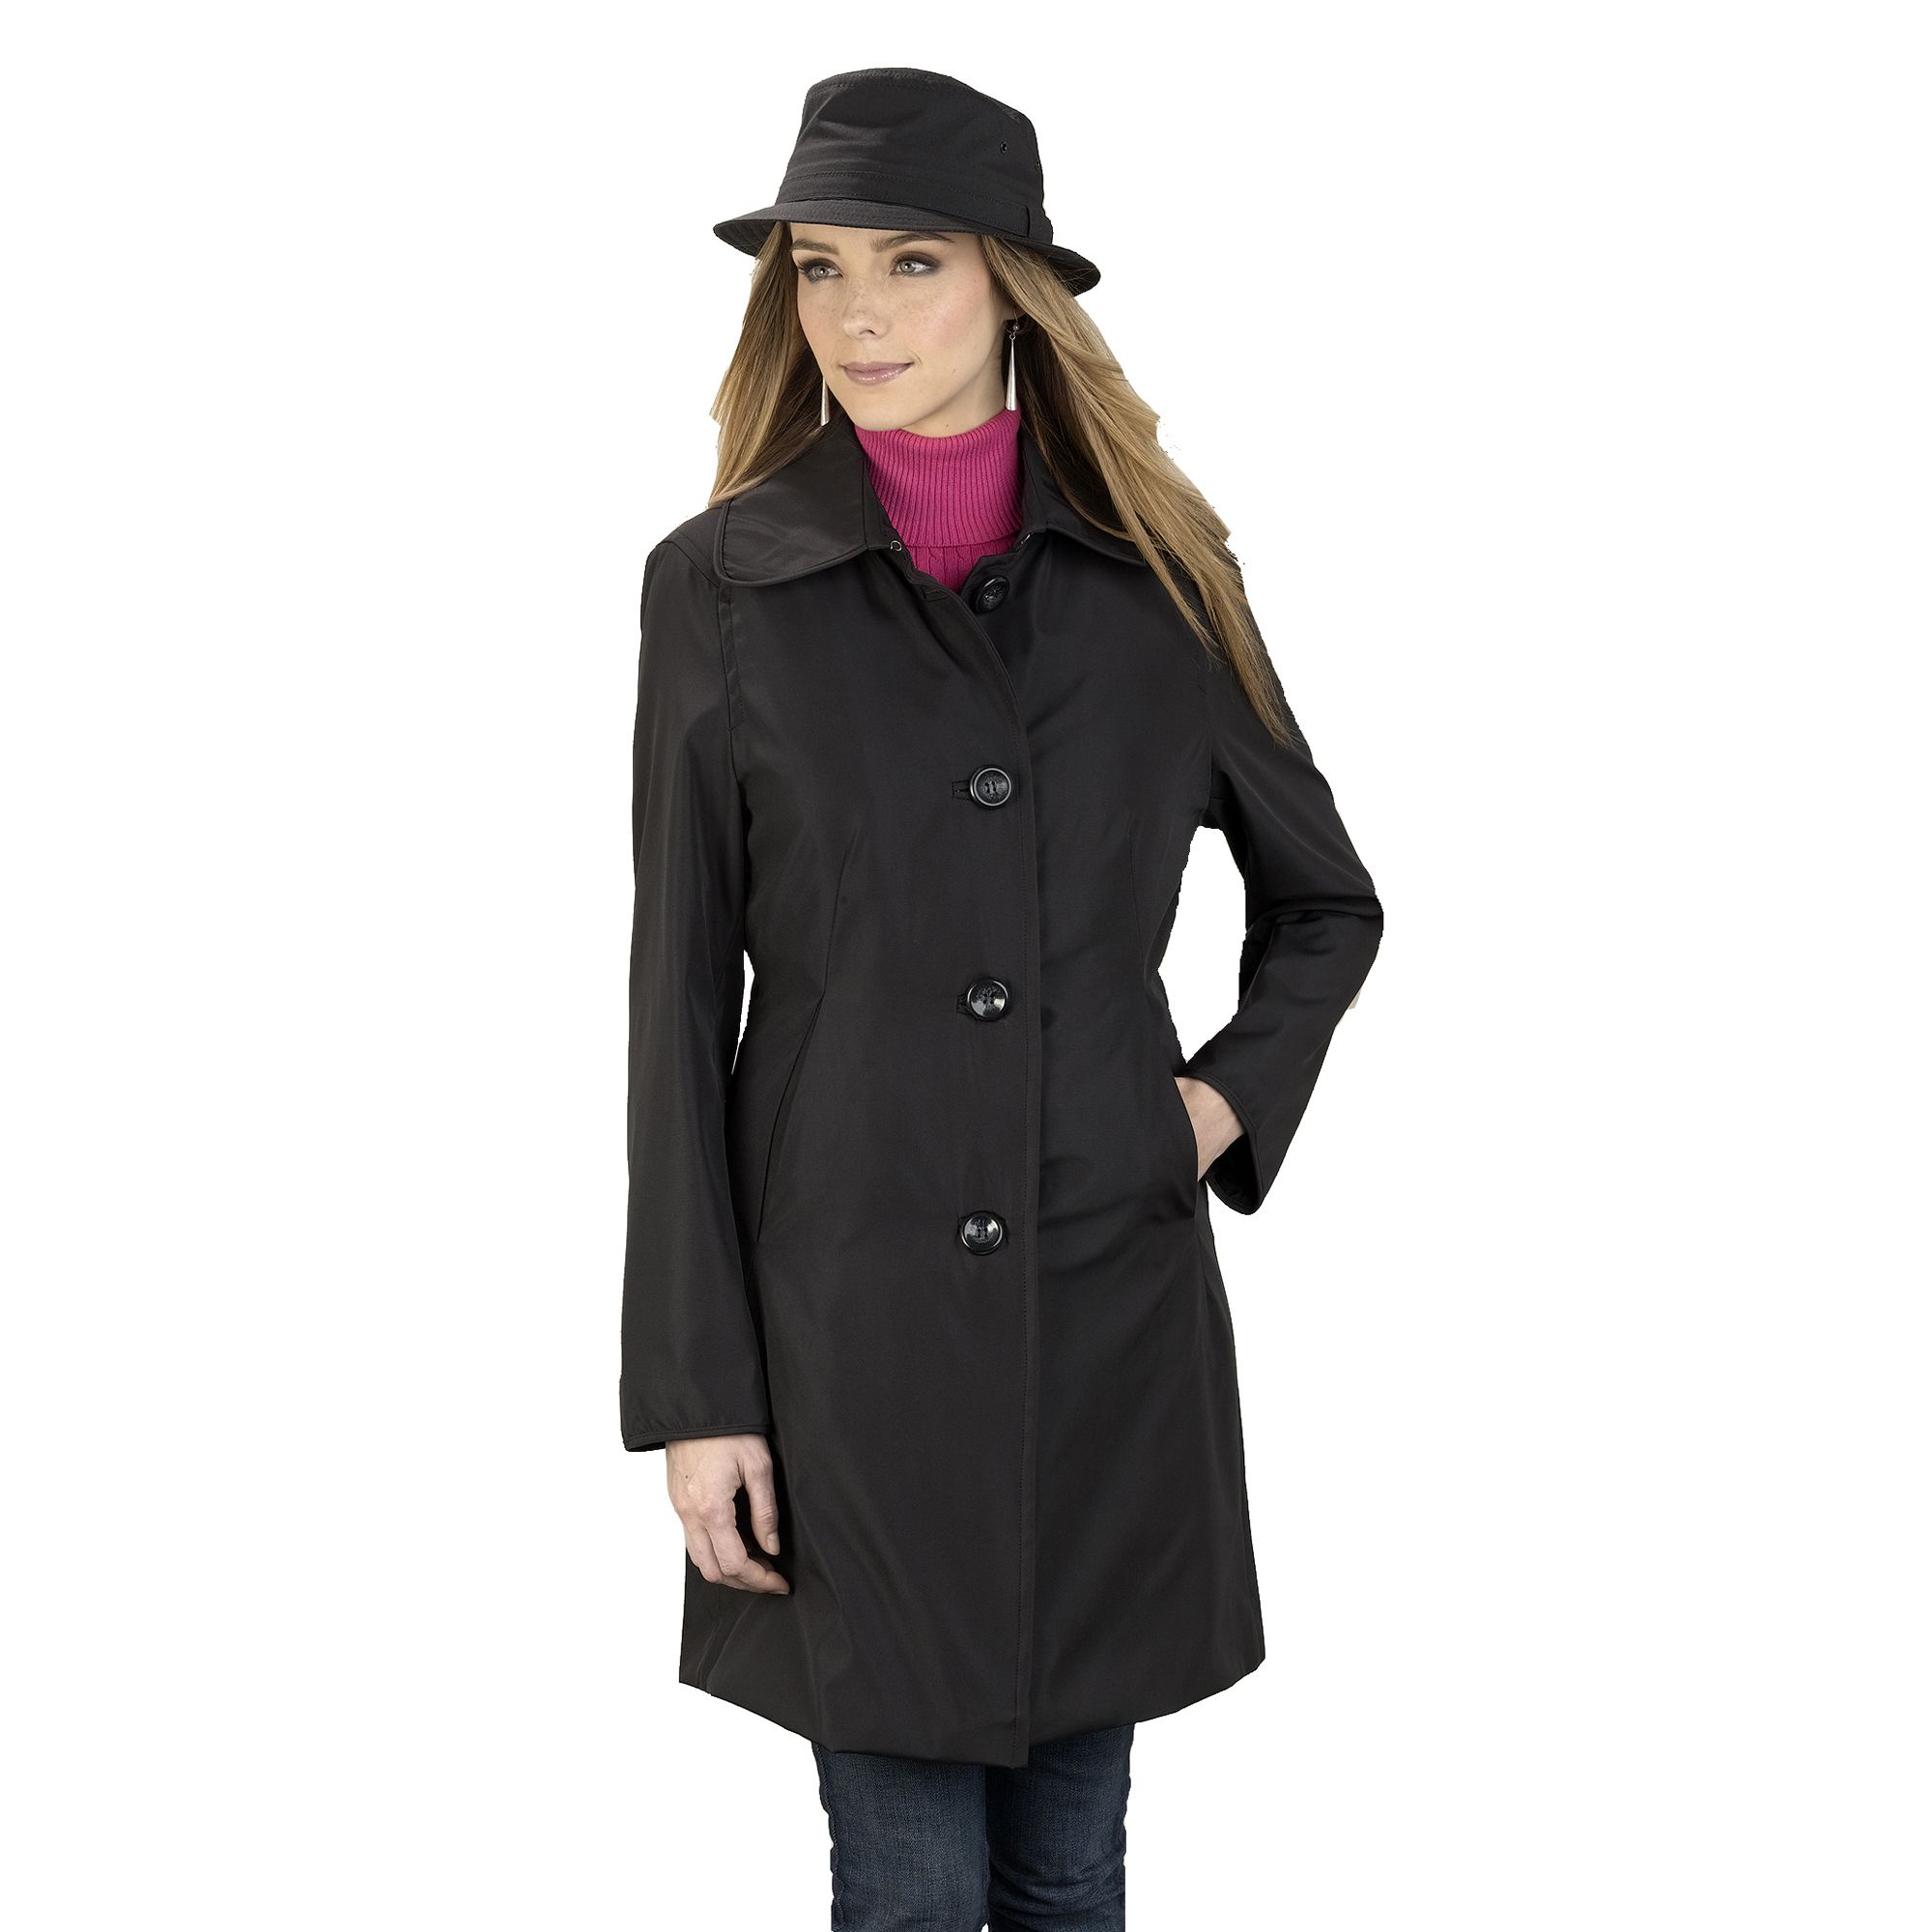 Excelled Women's Raincoat at Kmart.com